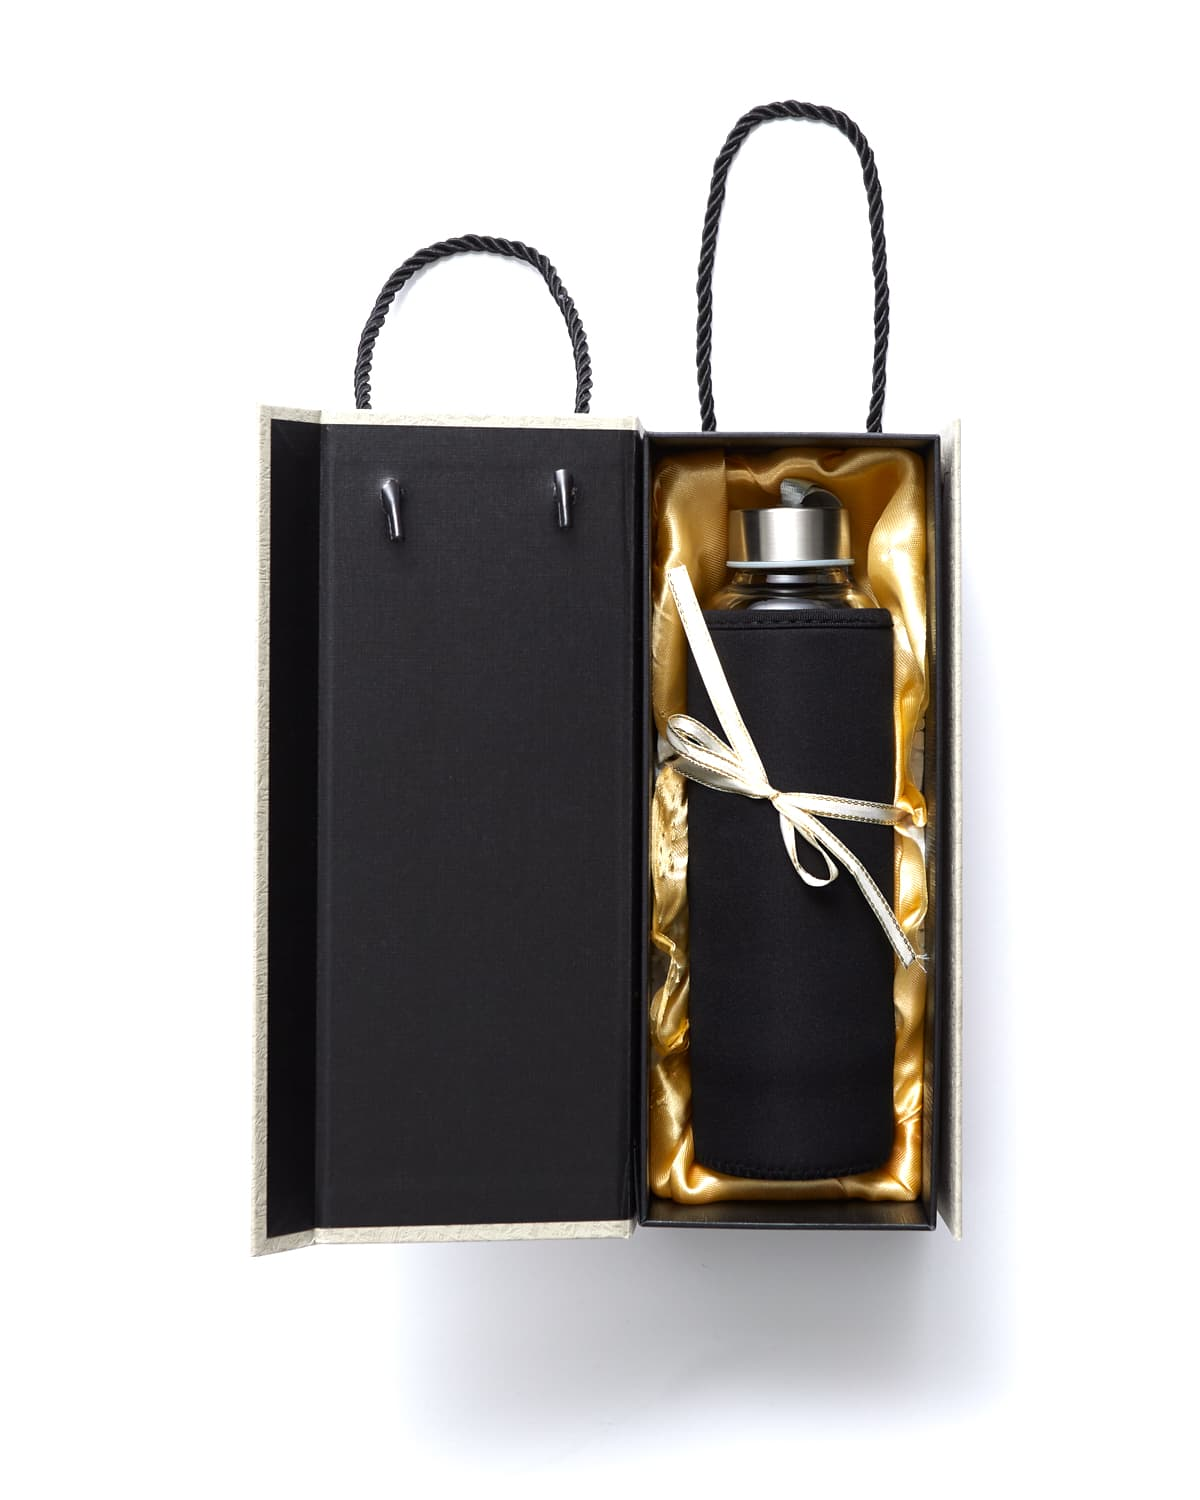 'Very Extra' Golden Obsidian Water Bottle - 16oz